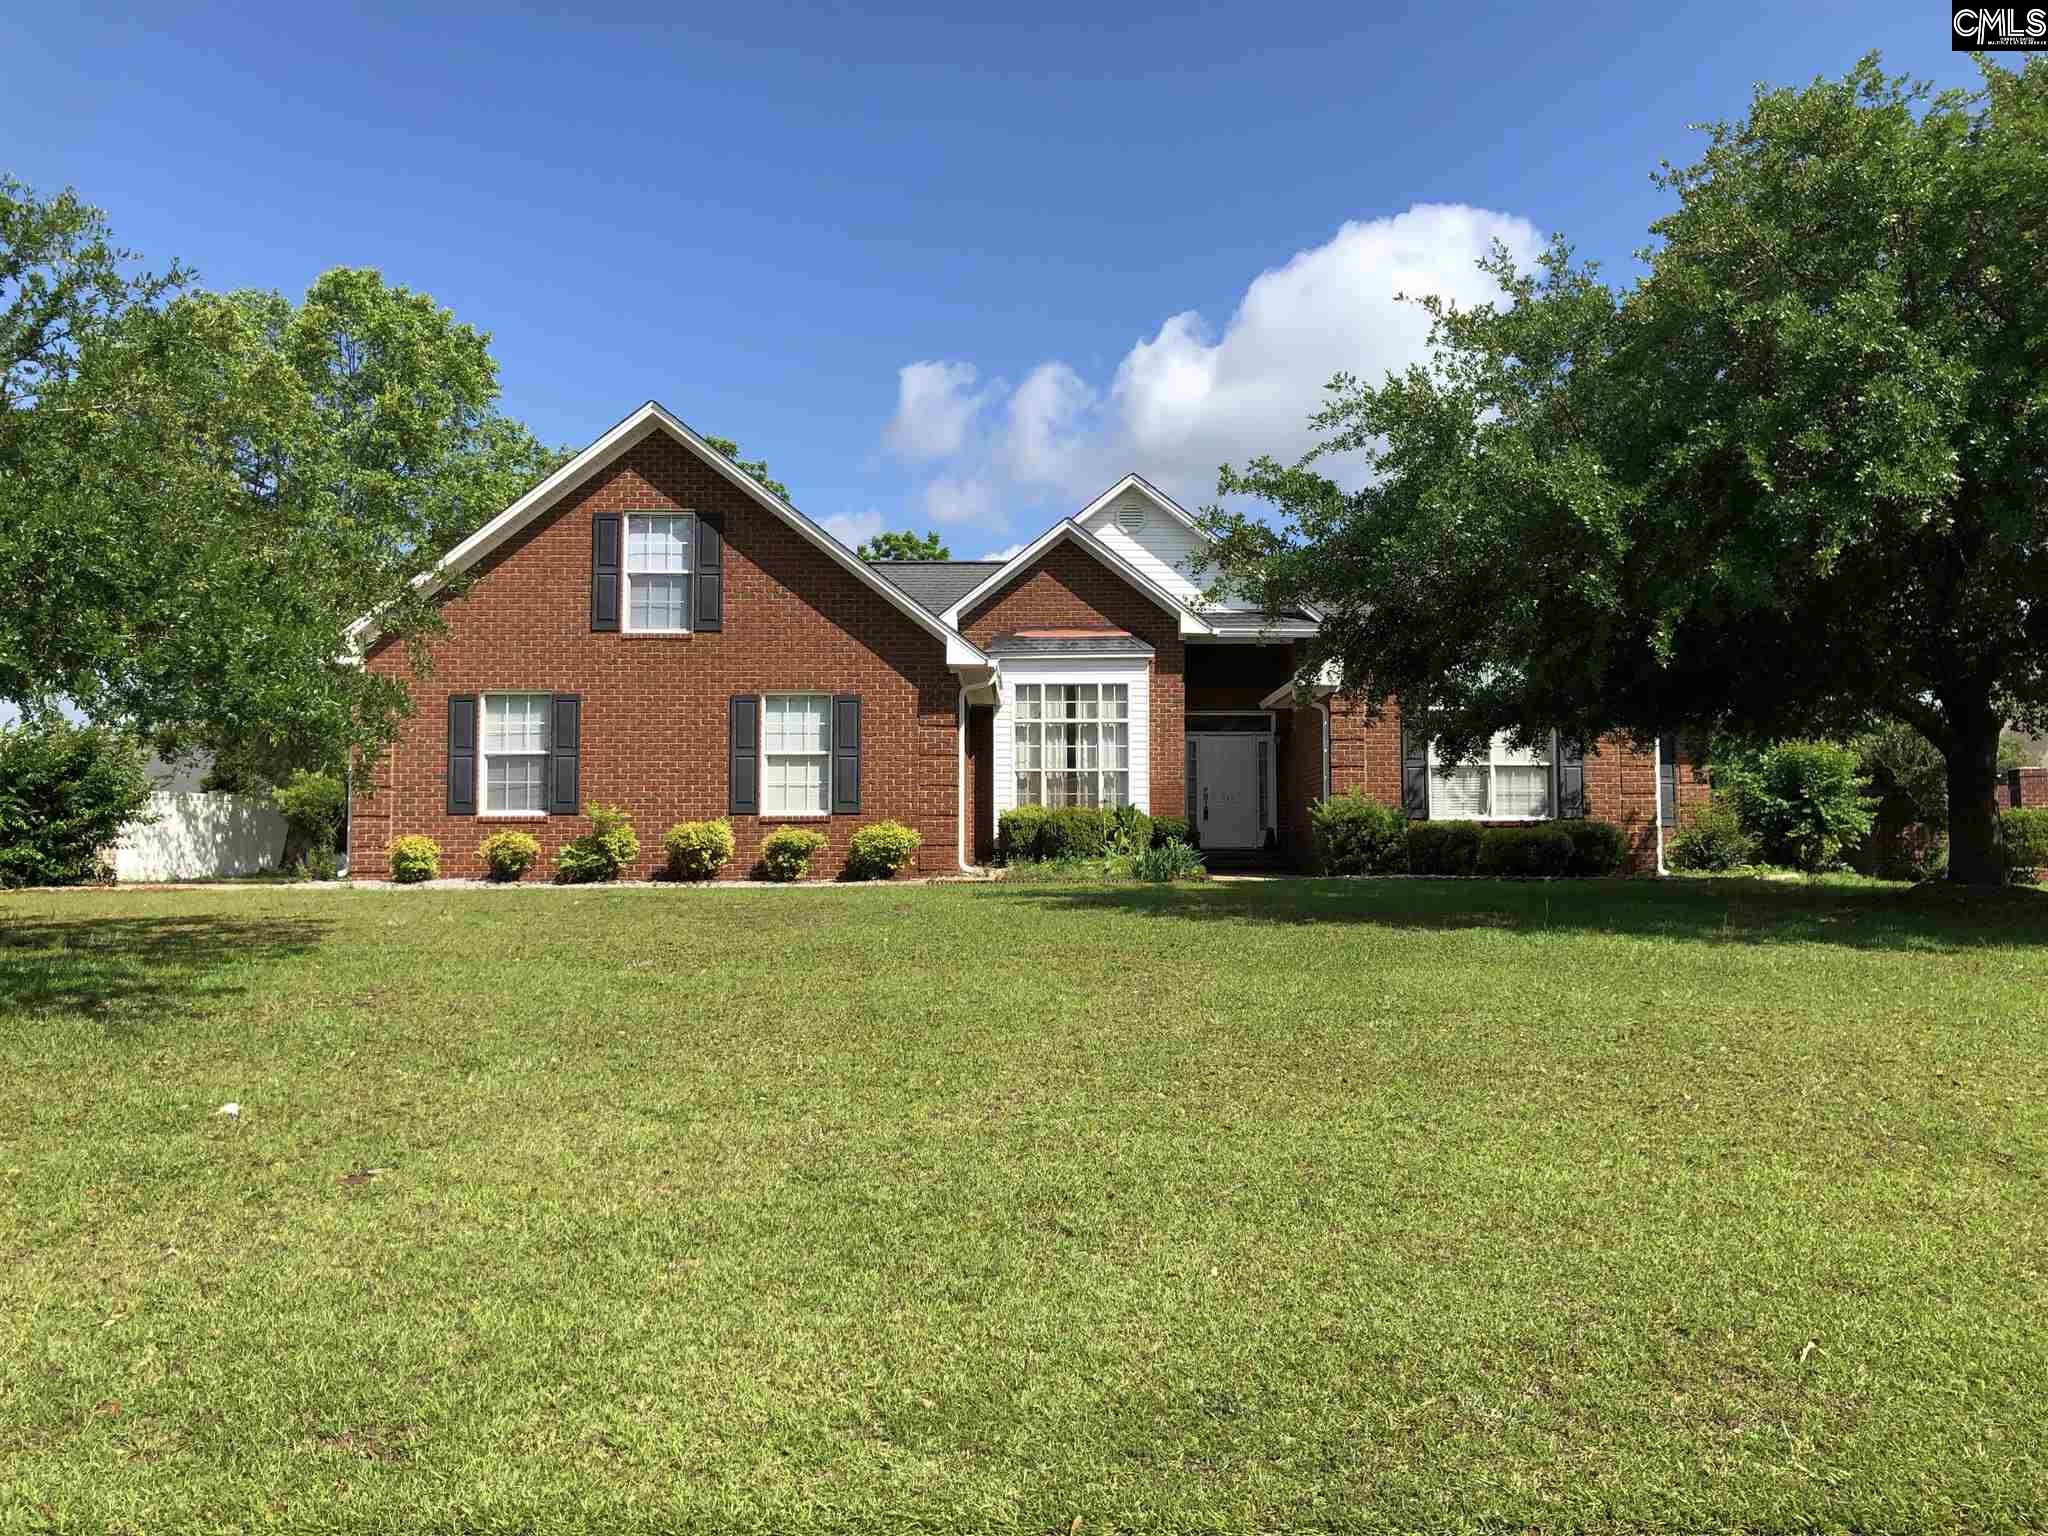 730 Windrow Sumter, SC 29150